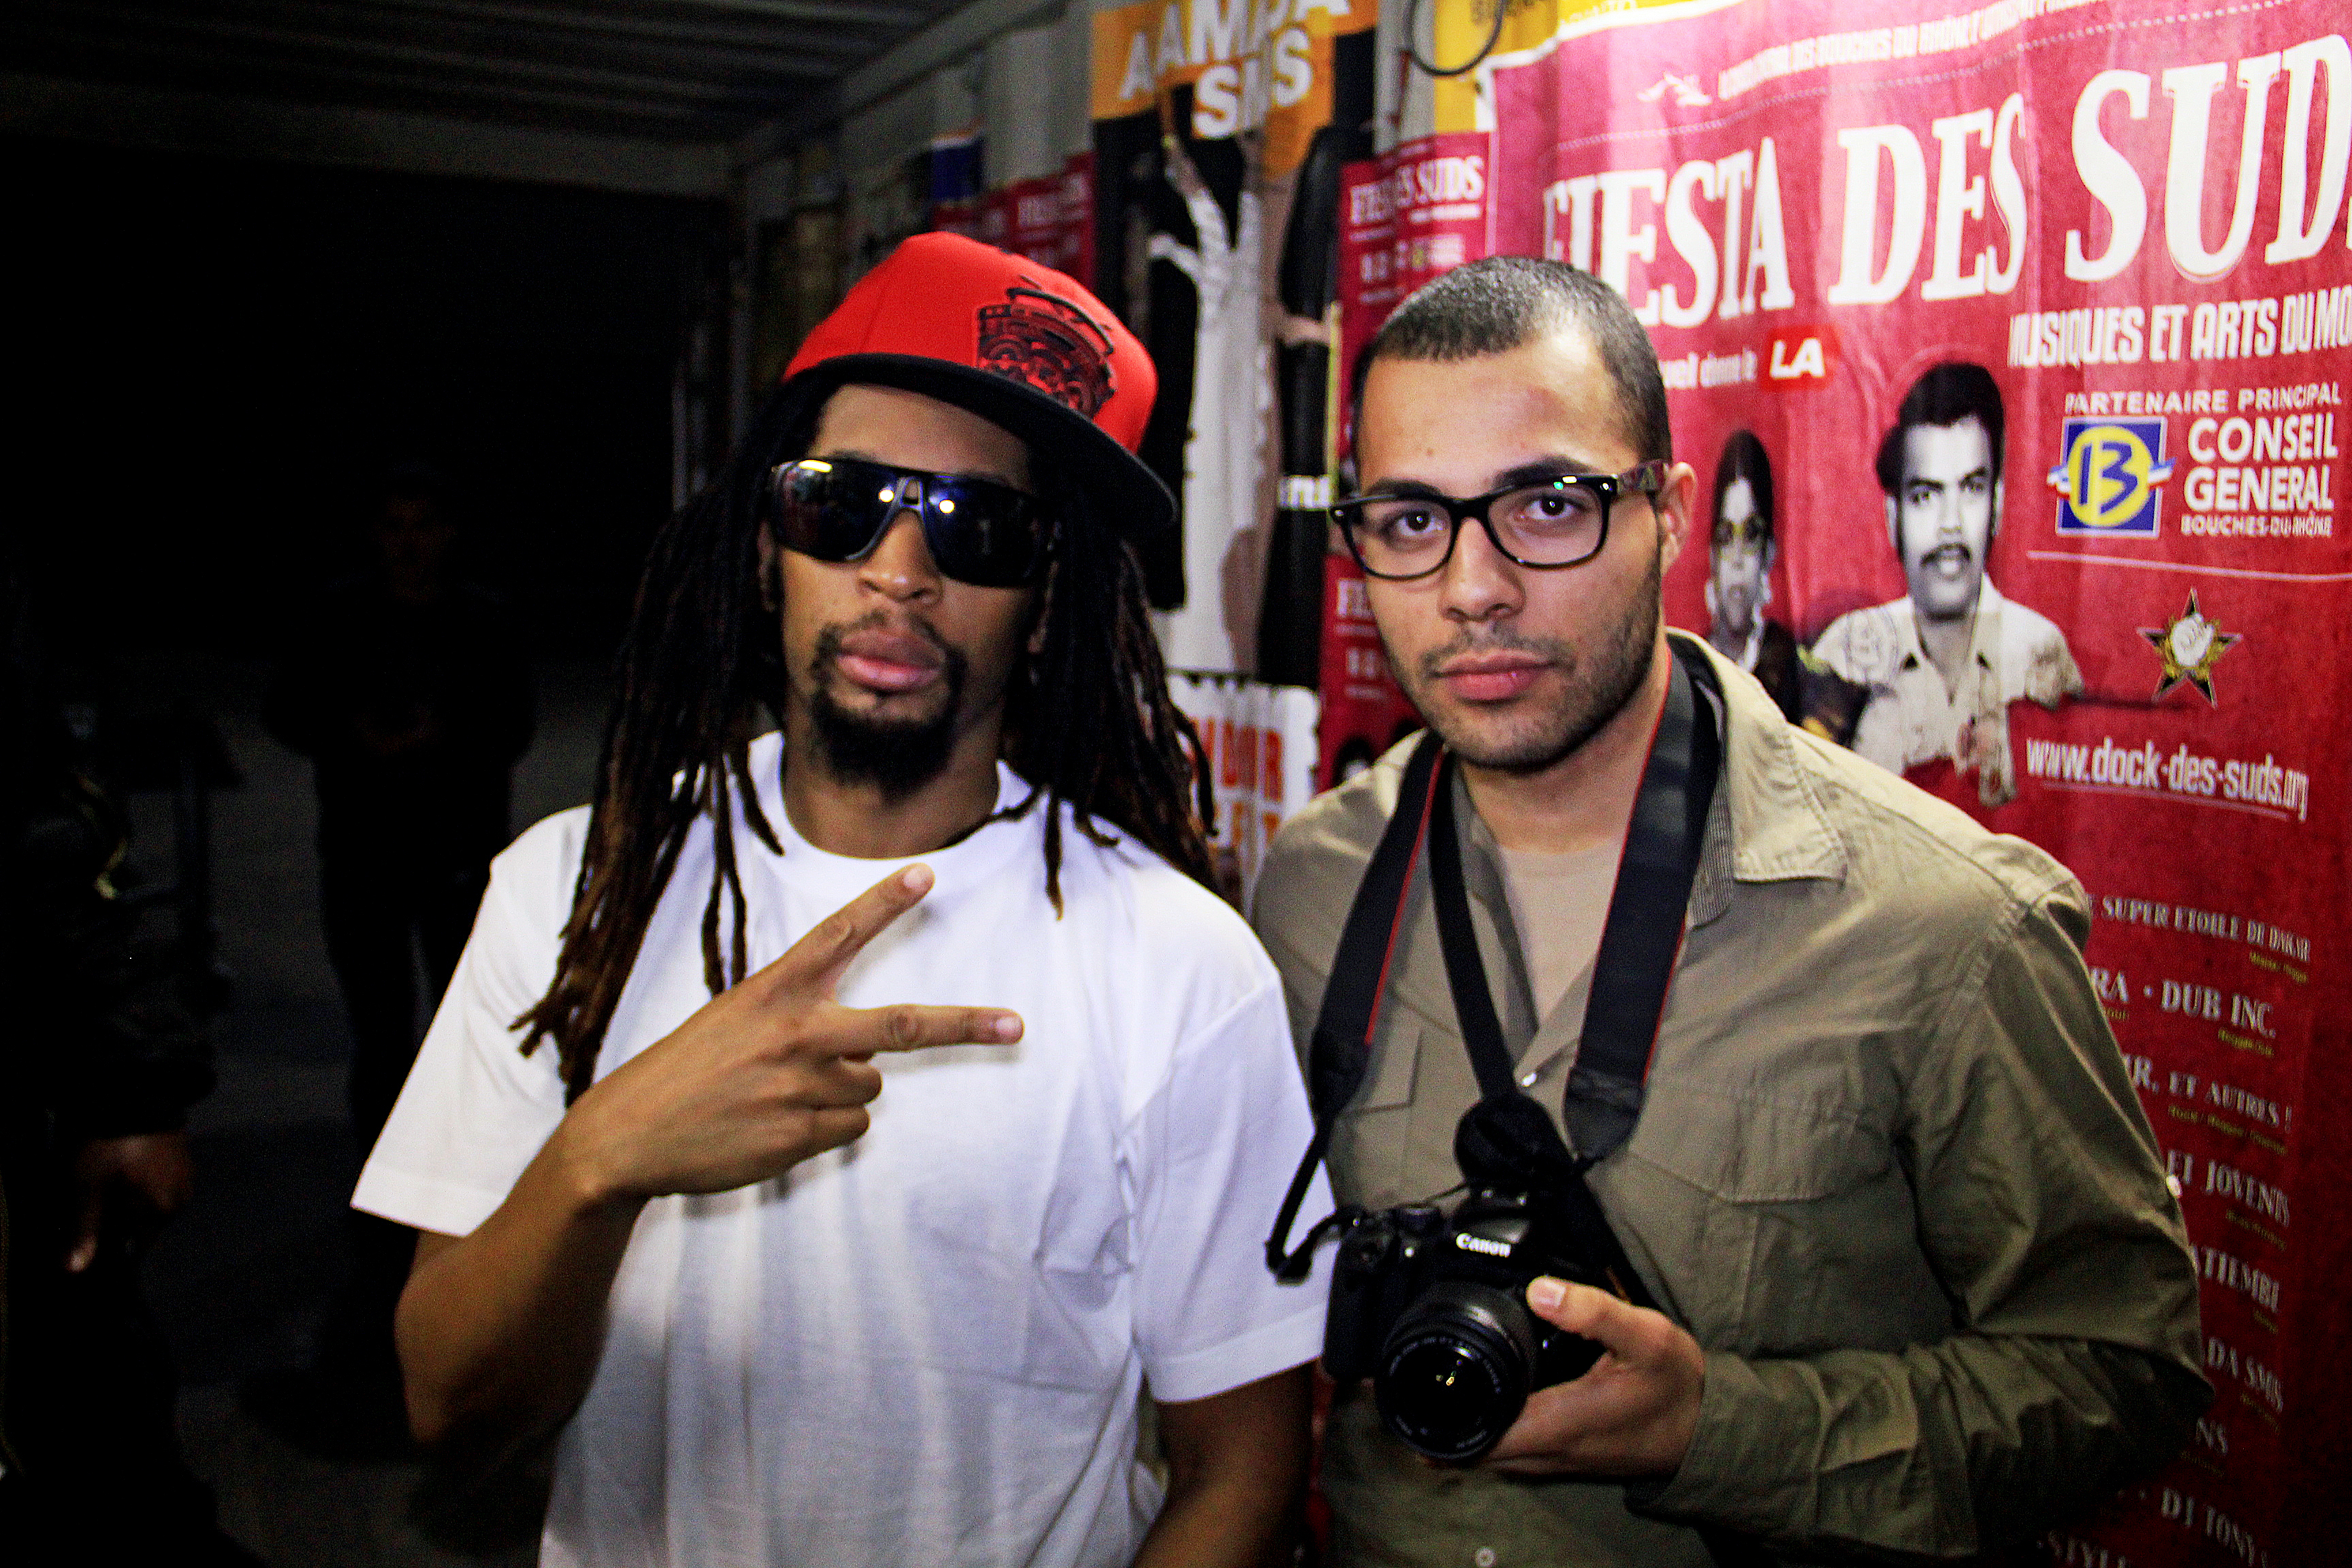 Lil Jon Wallpapers Images Photos Pictures Backgrounds 3456x2304